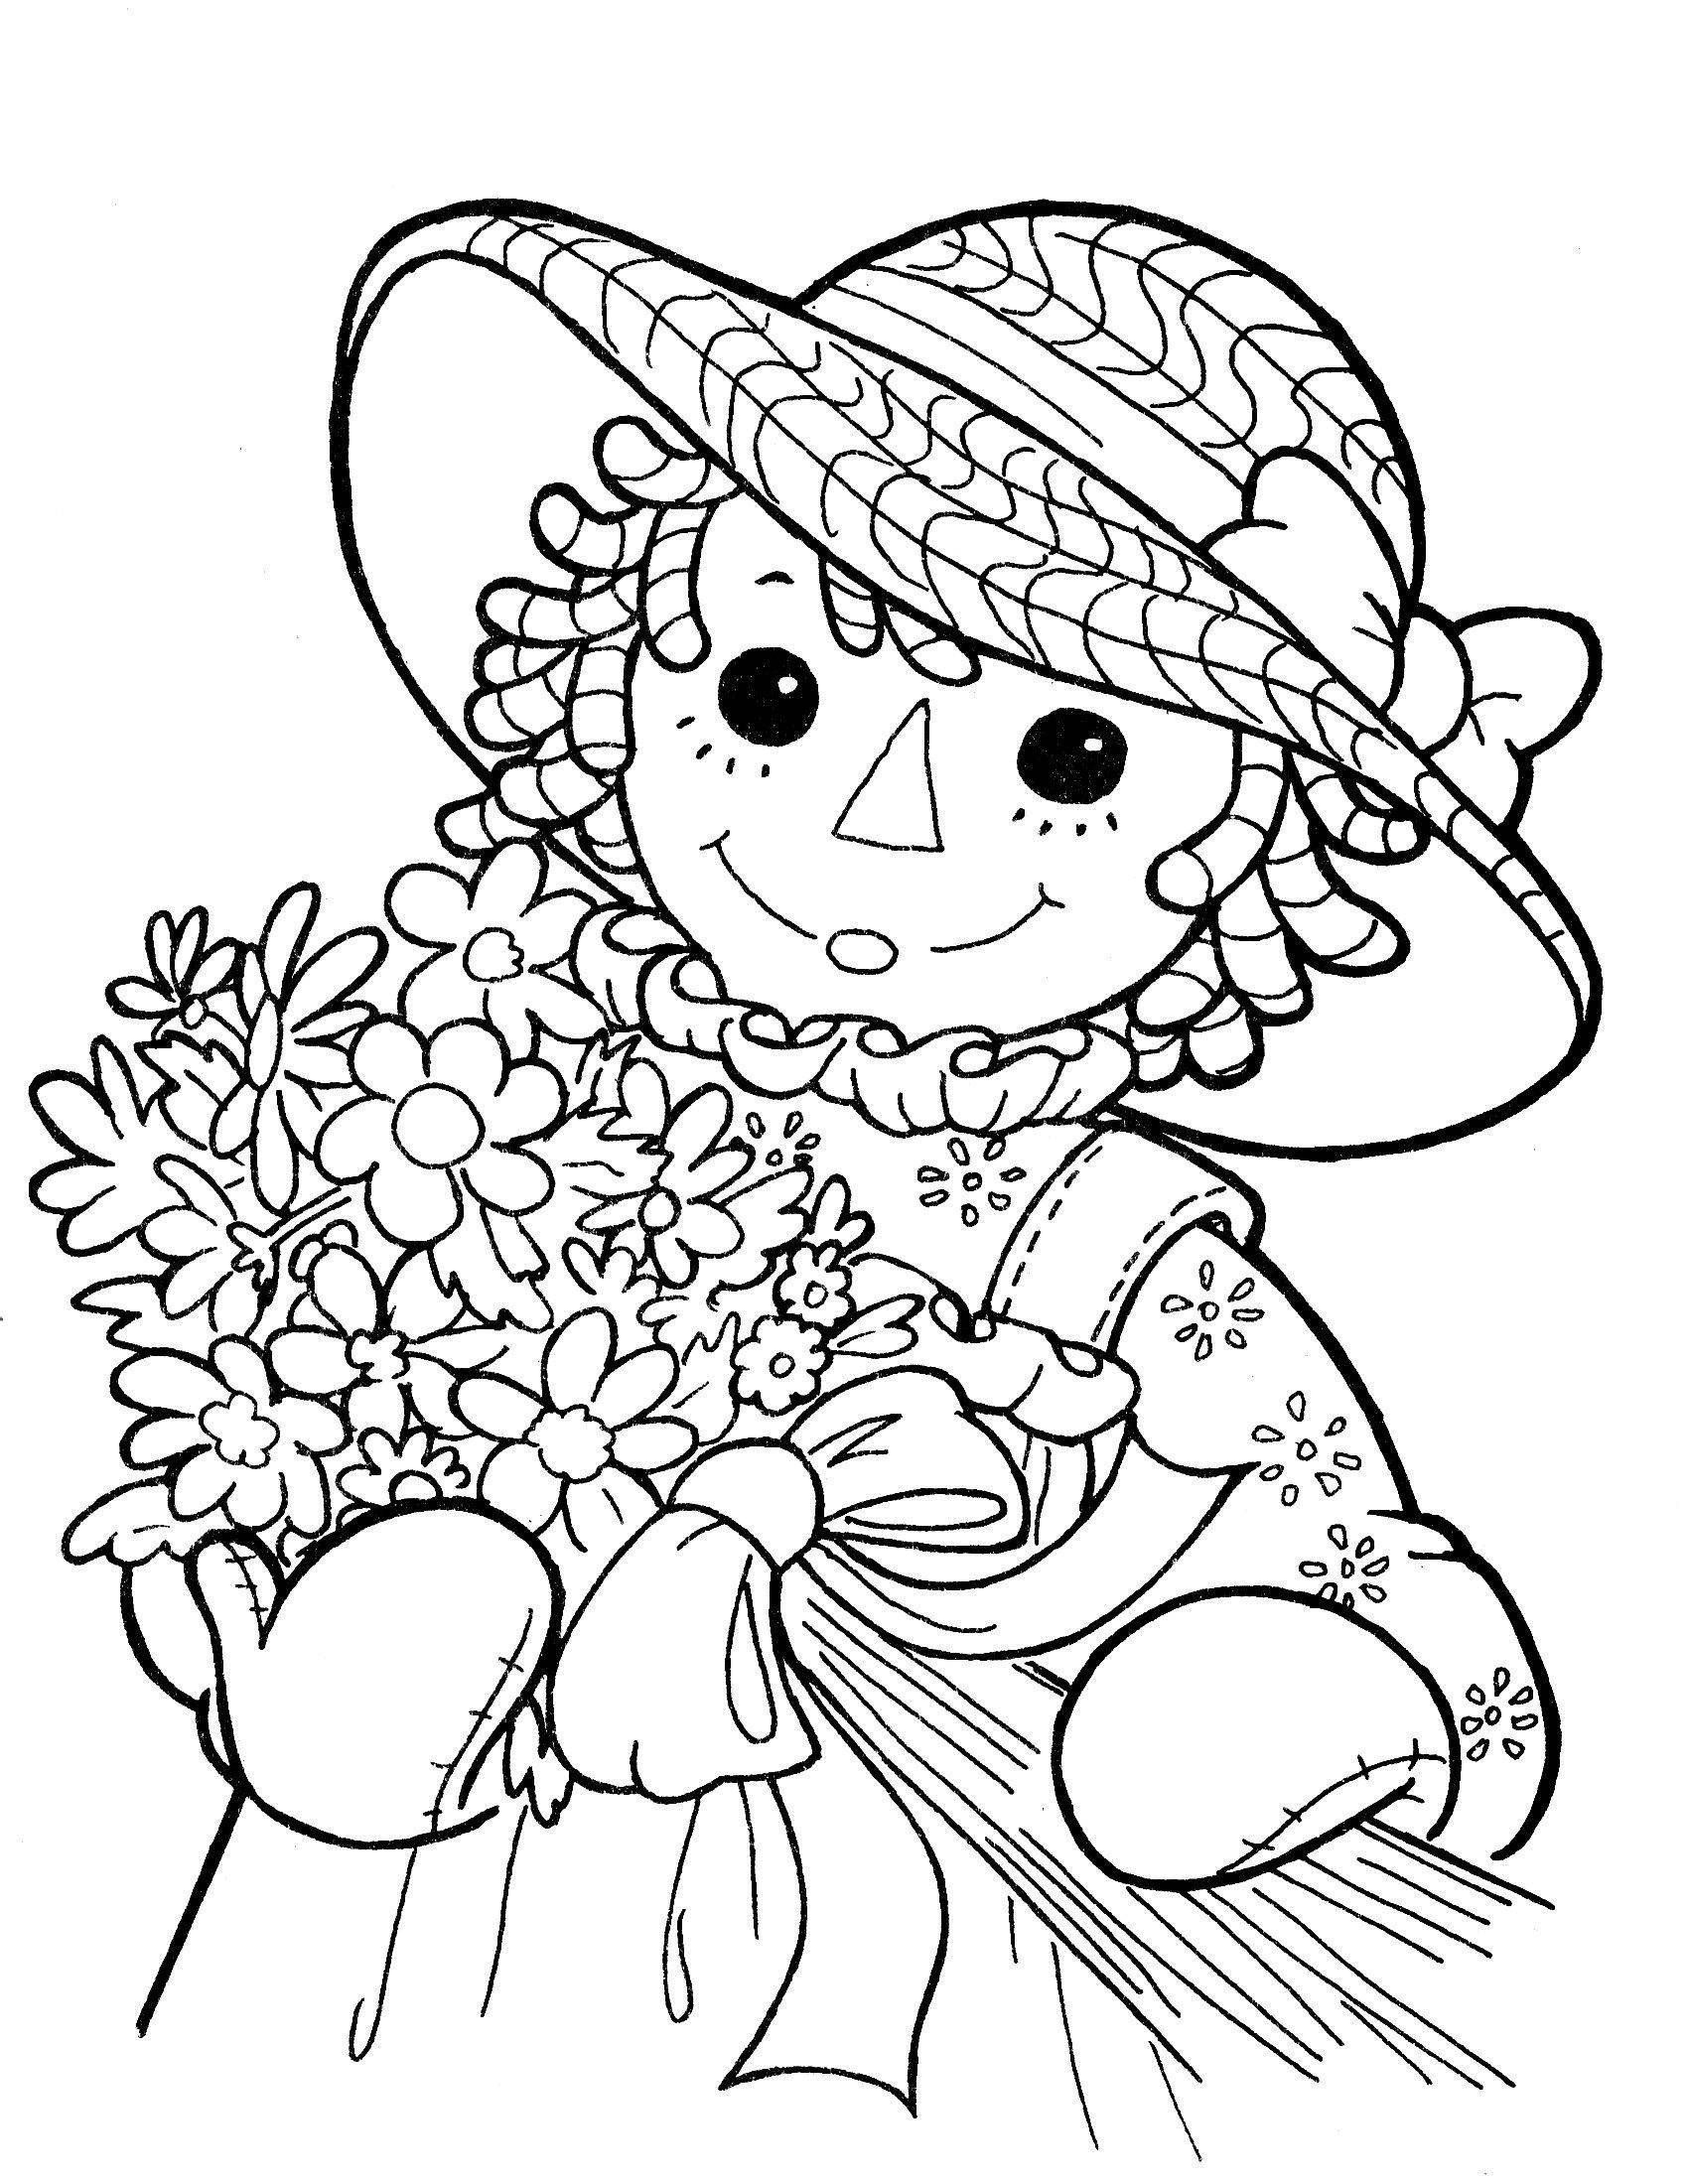 Rosh Hashanah Coloring Pages Awesome Rosh Hashanah Coloring